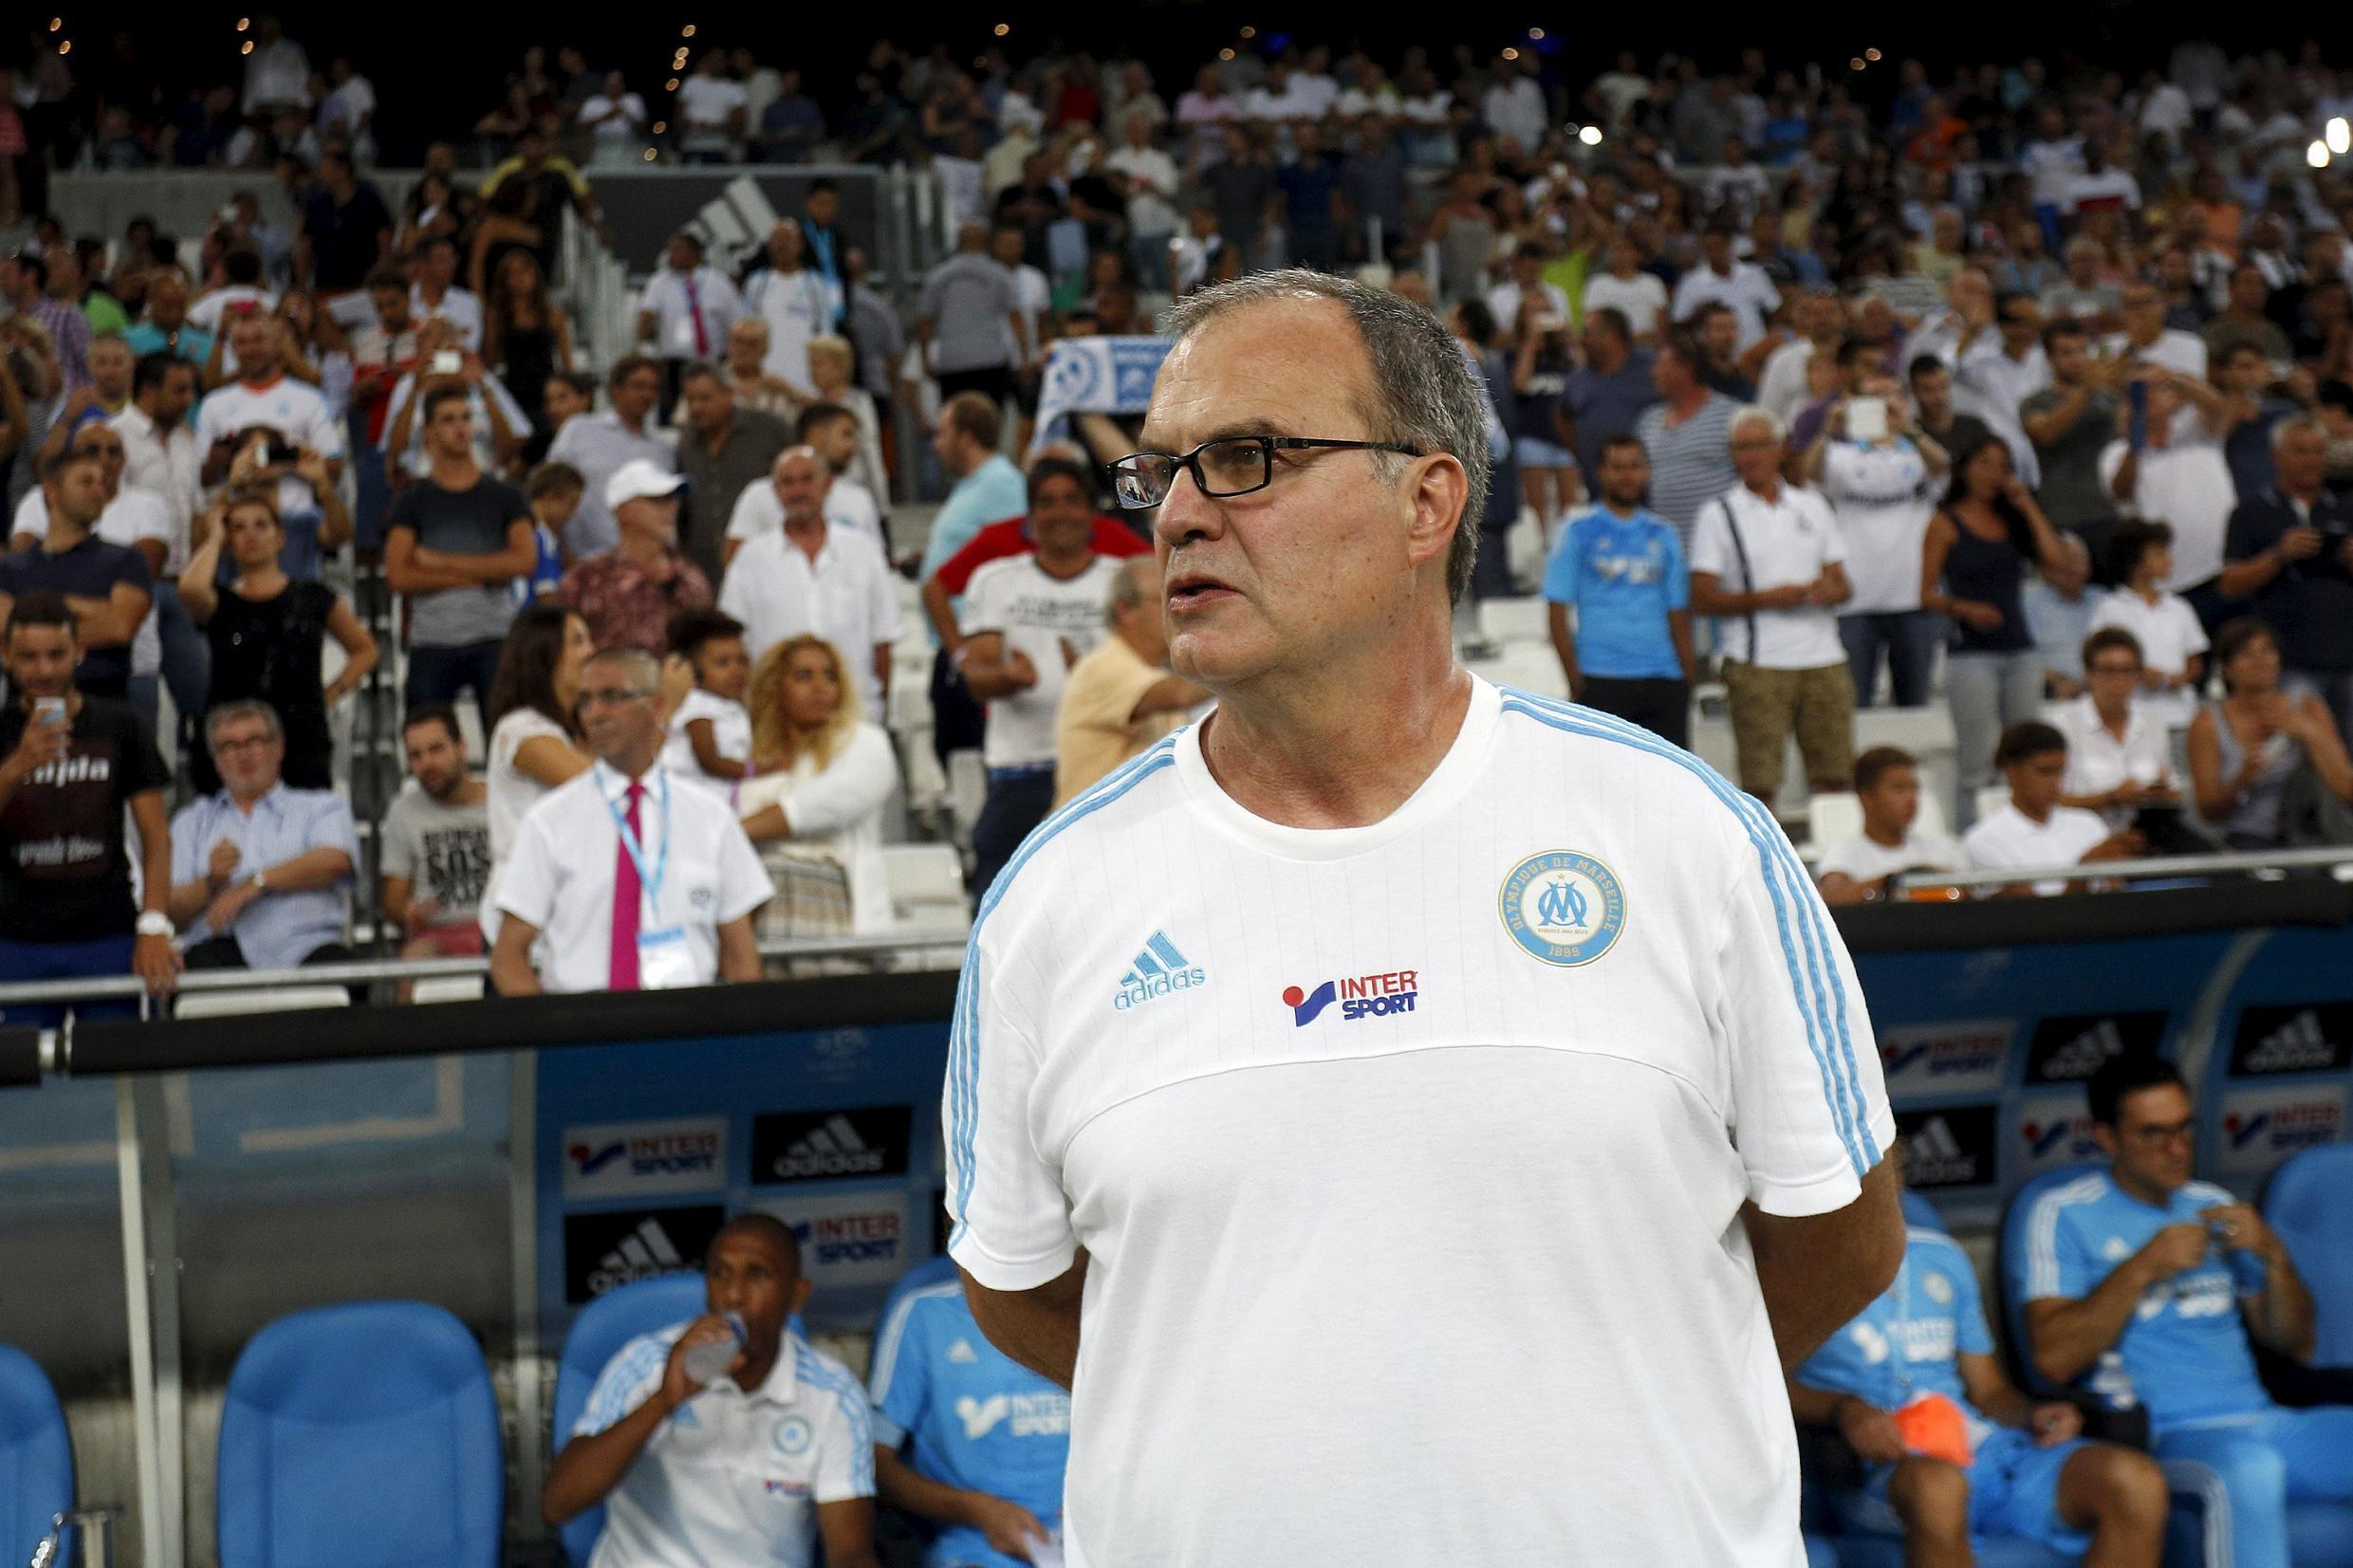 Marcelo Bielsa will coach Lille from July nearly two years after he left his post as manager of Marseille.